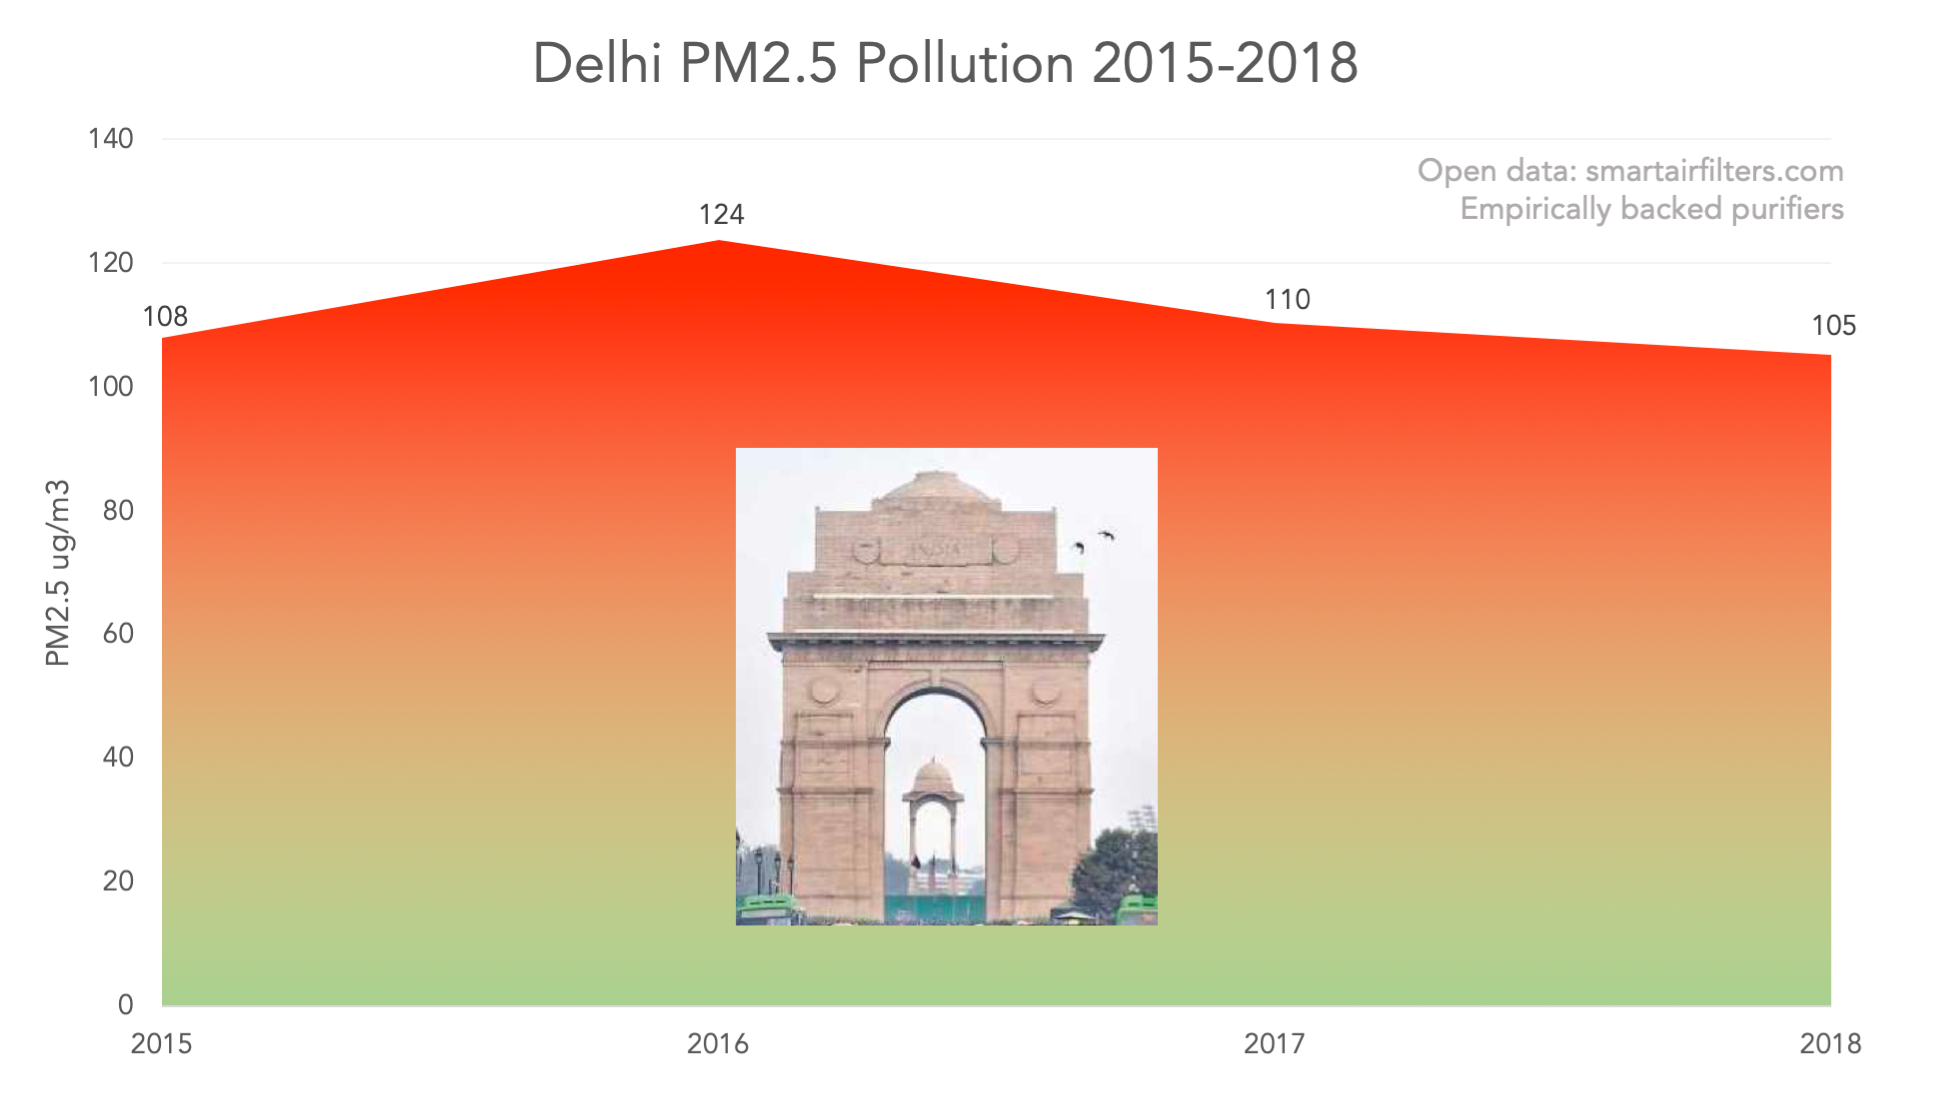 Delhi average PM2.5 air pollution 2015 to 2018